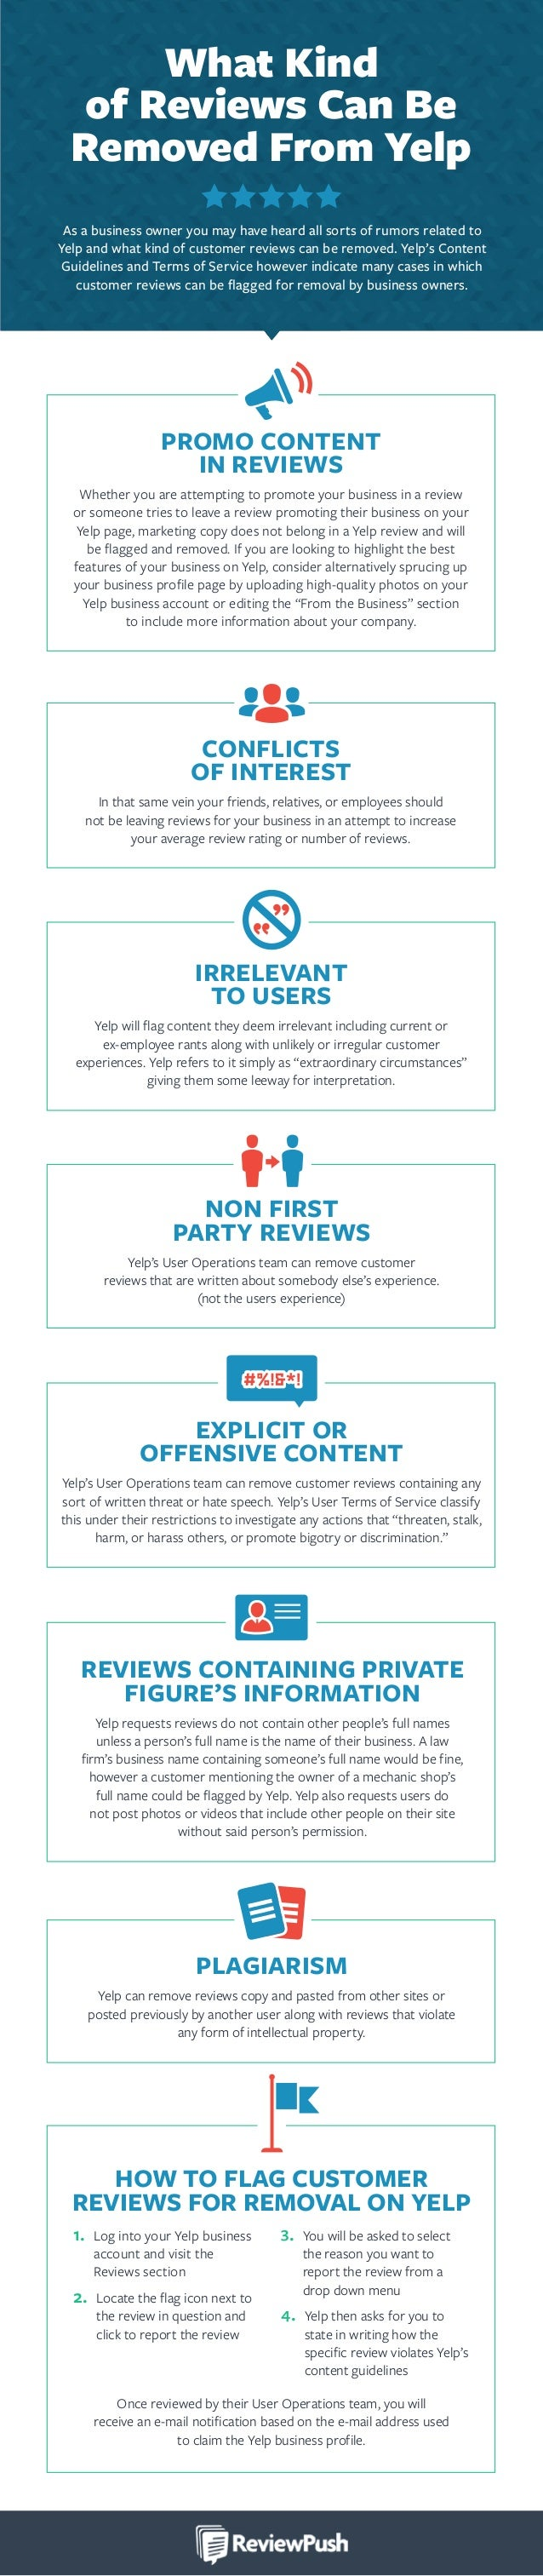 PROMO CONTENT IN REVIEWS Whether you are attempting to promote your business in a review or someone tries to leave a revie...